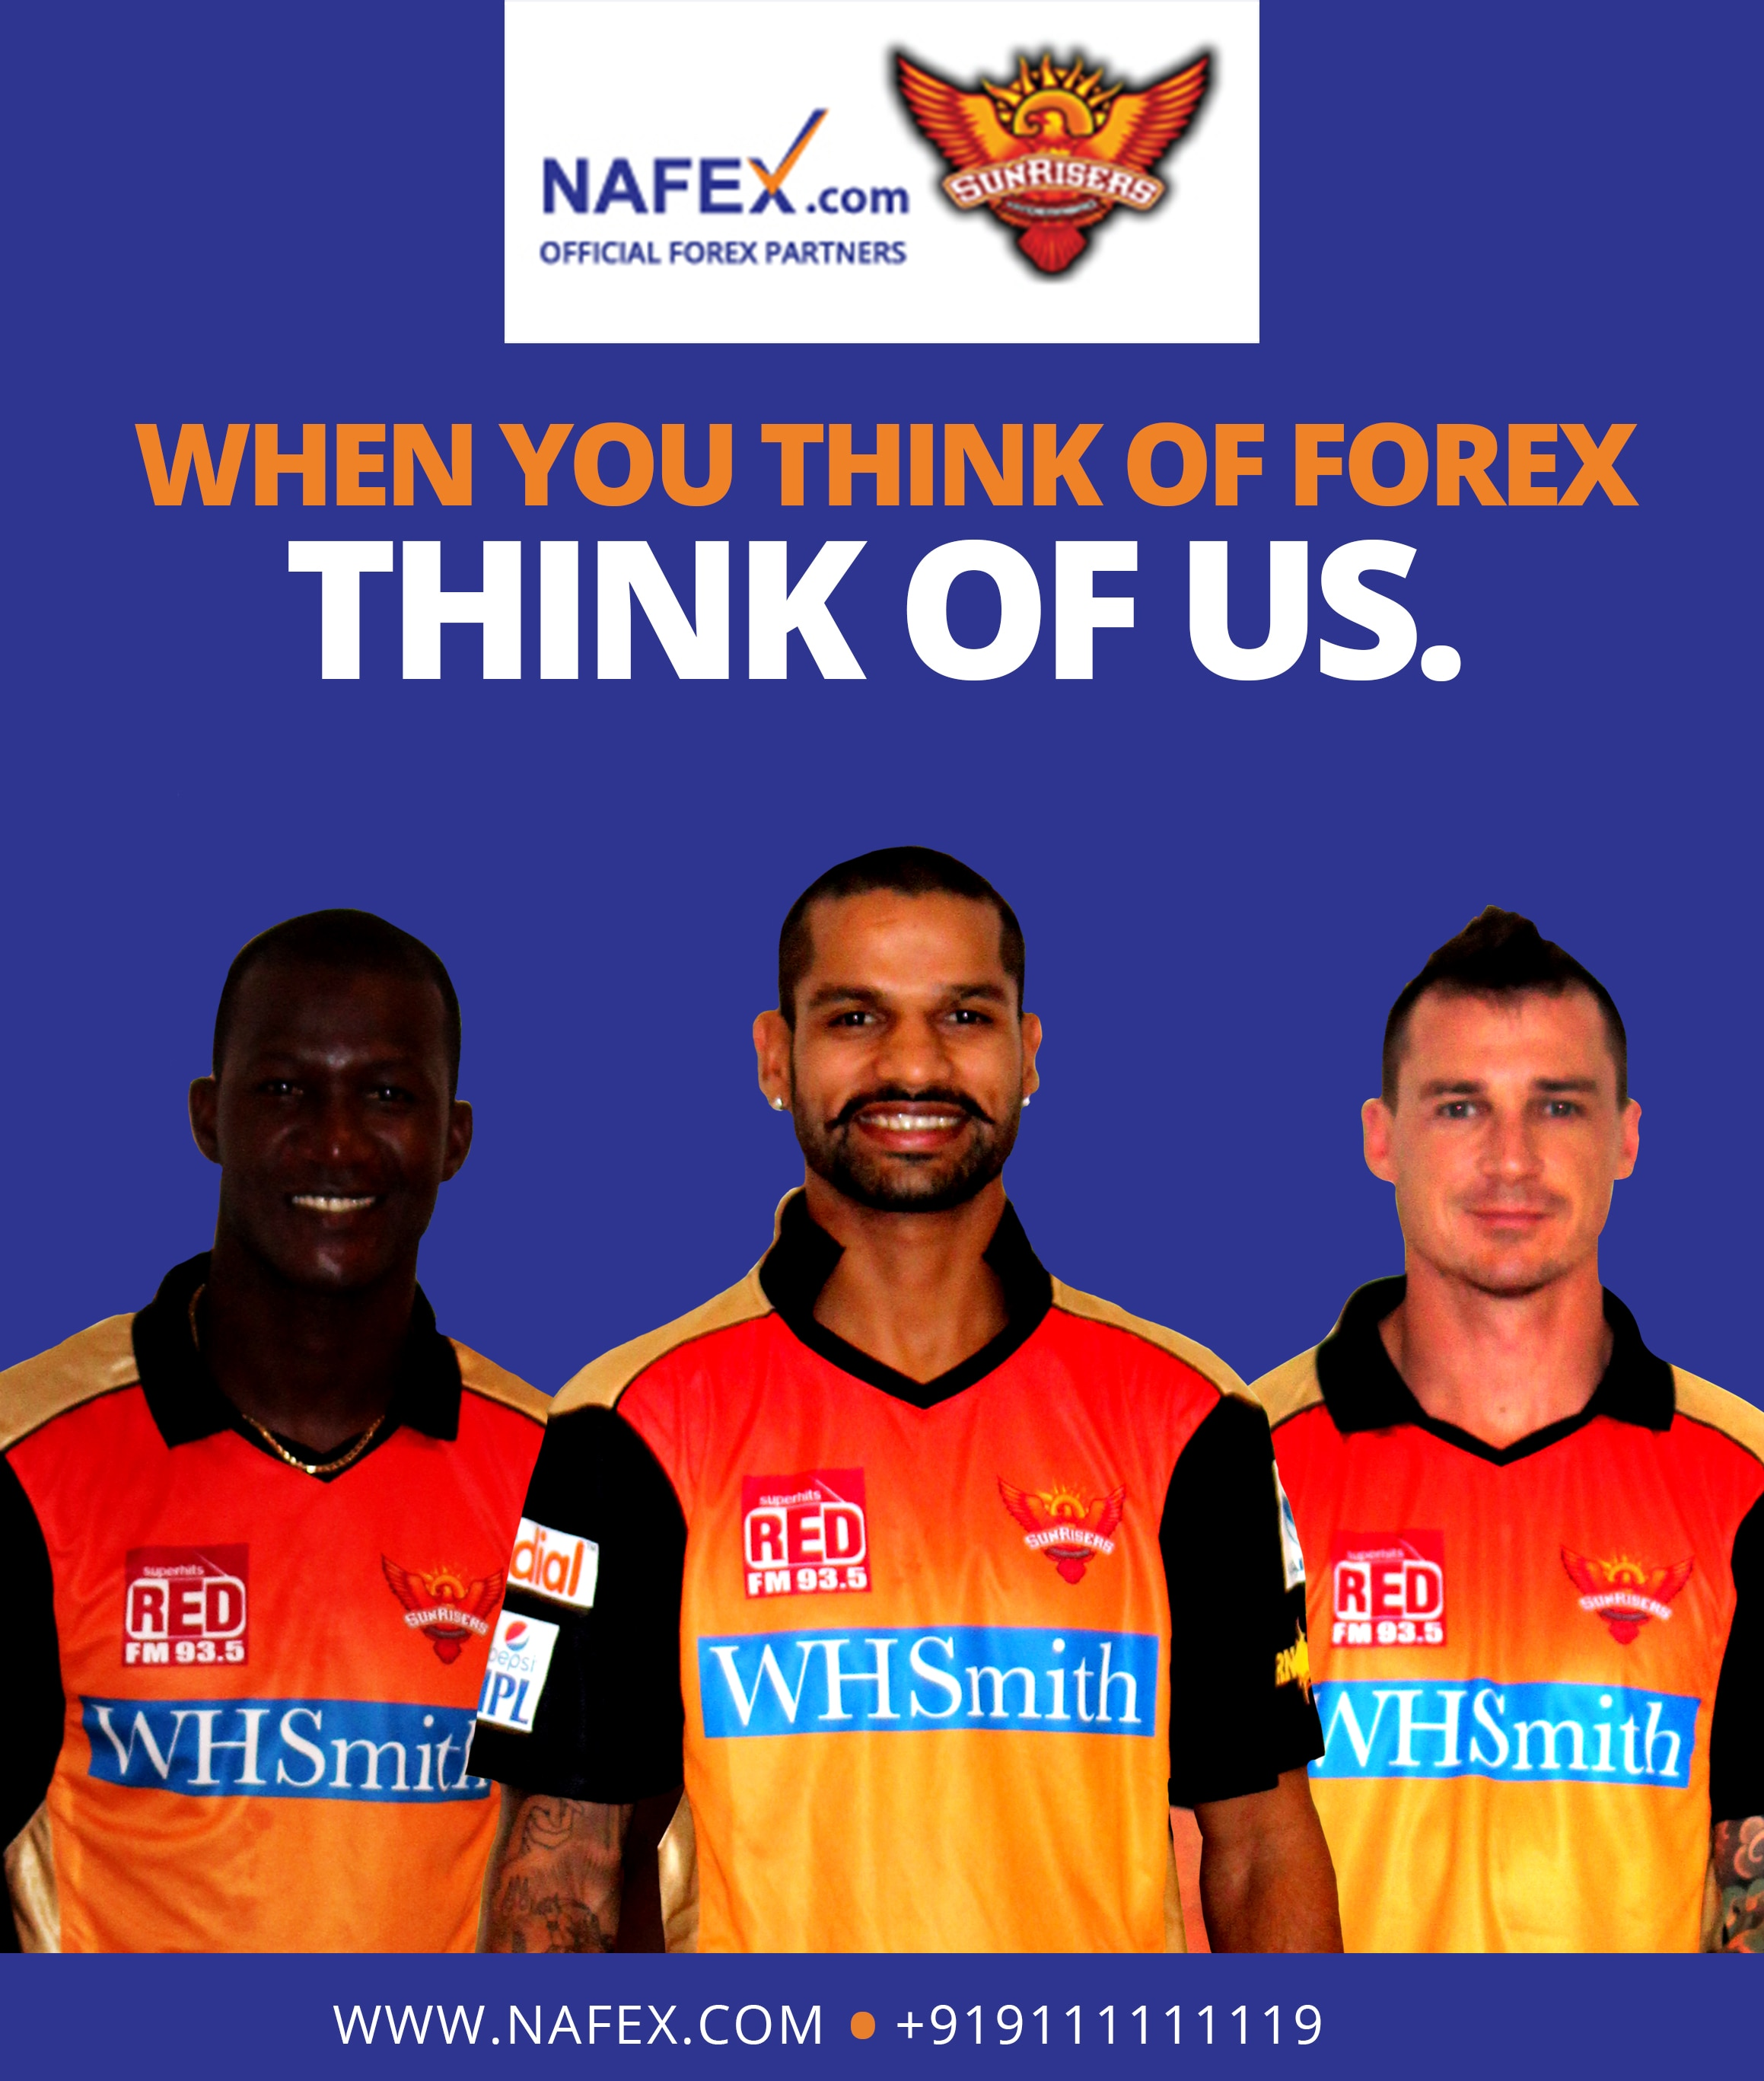 Nafex - Old Airport Road Foreign Currency Exchange Dealers Agents Old Airport Road, Online Travellers Cheque & Forex Prepaid Card